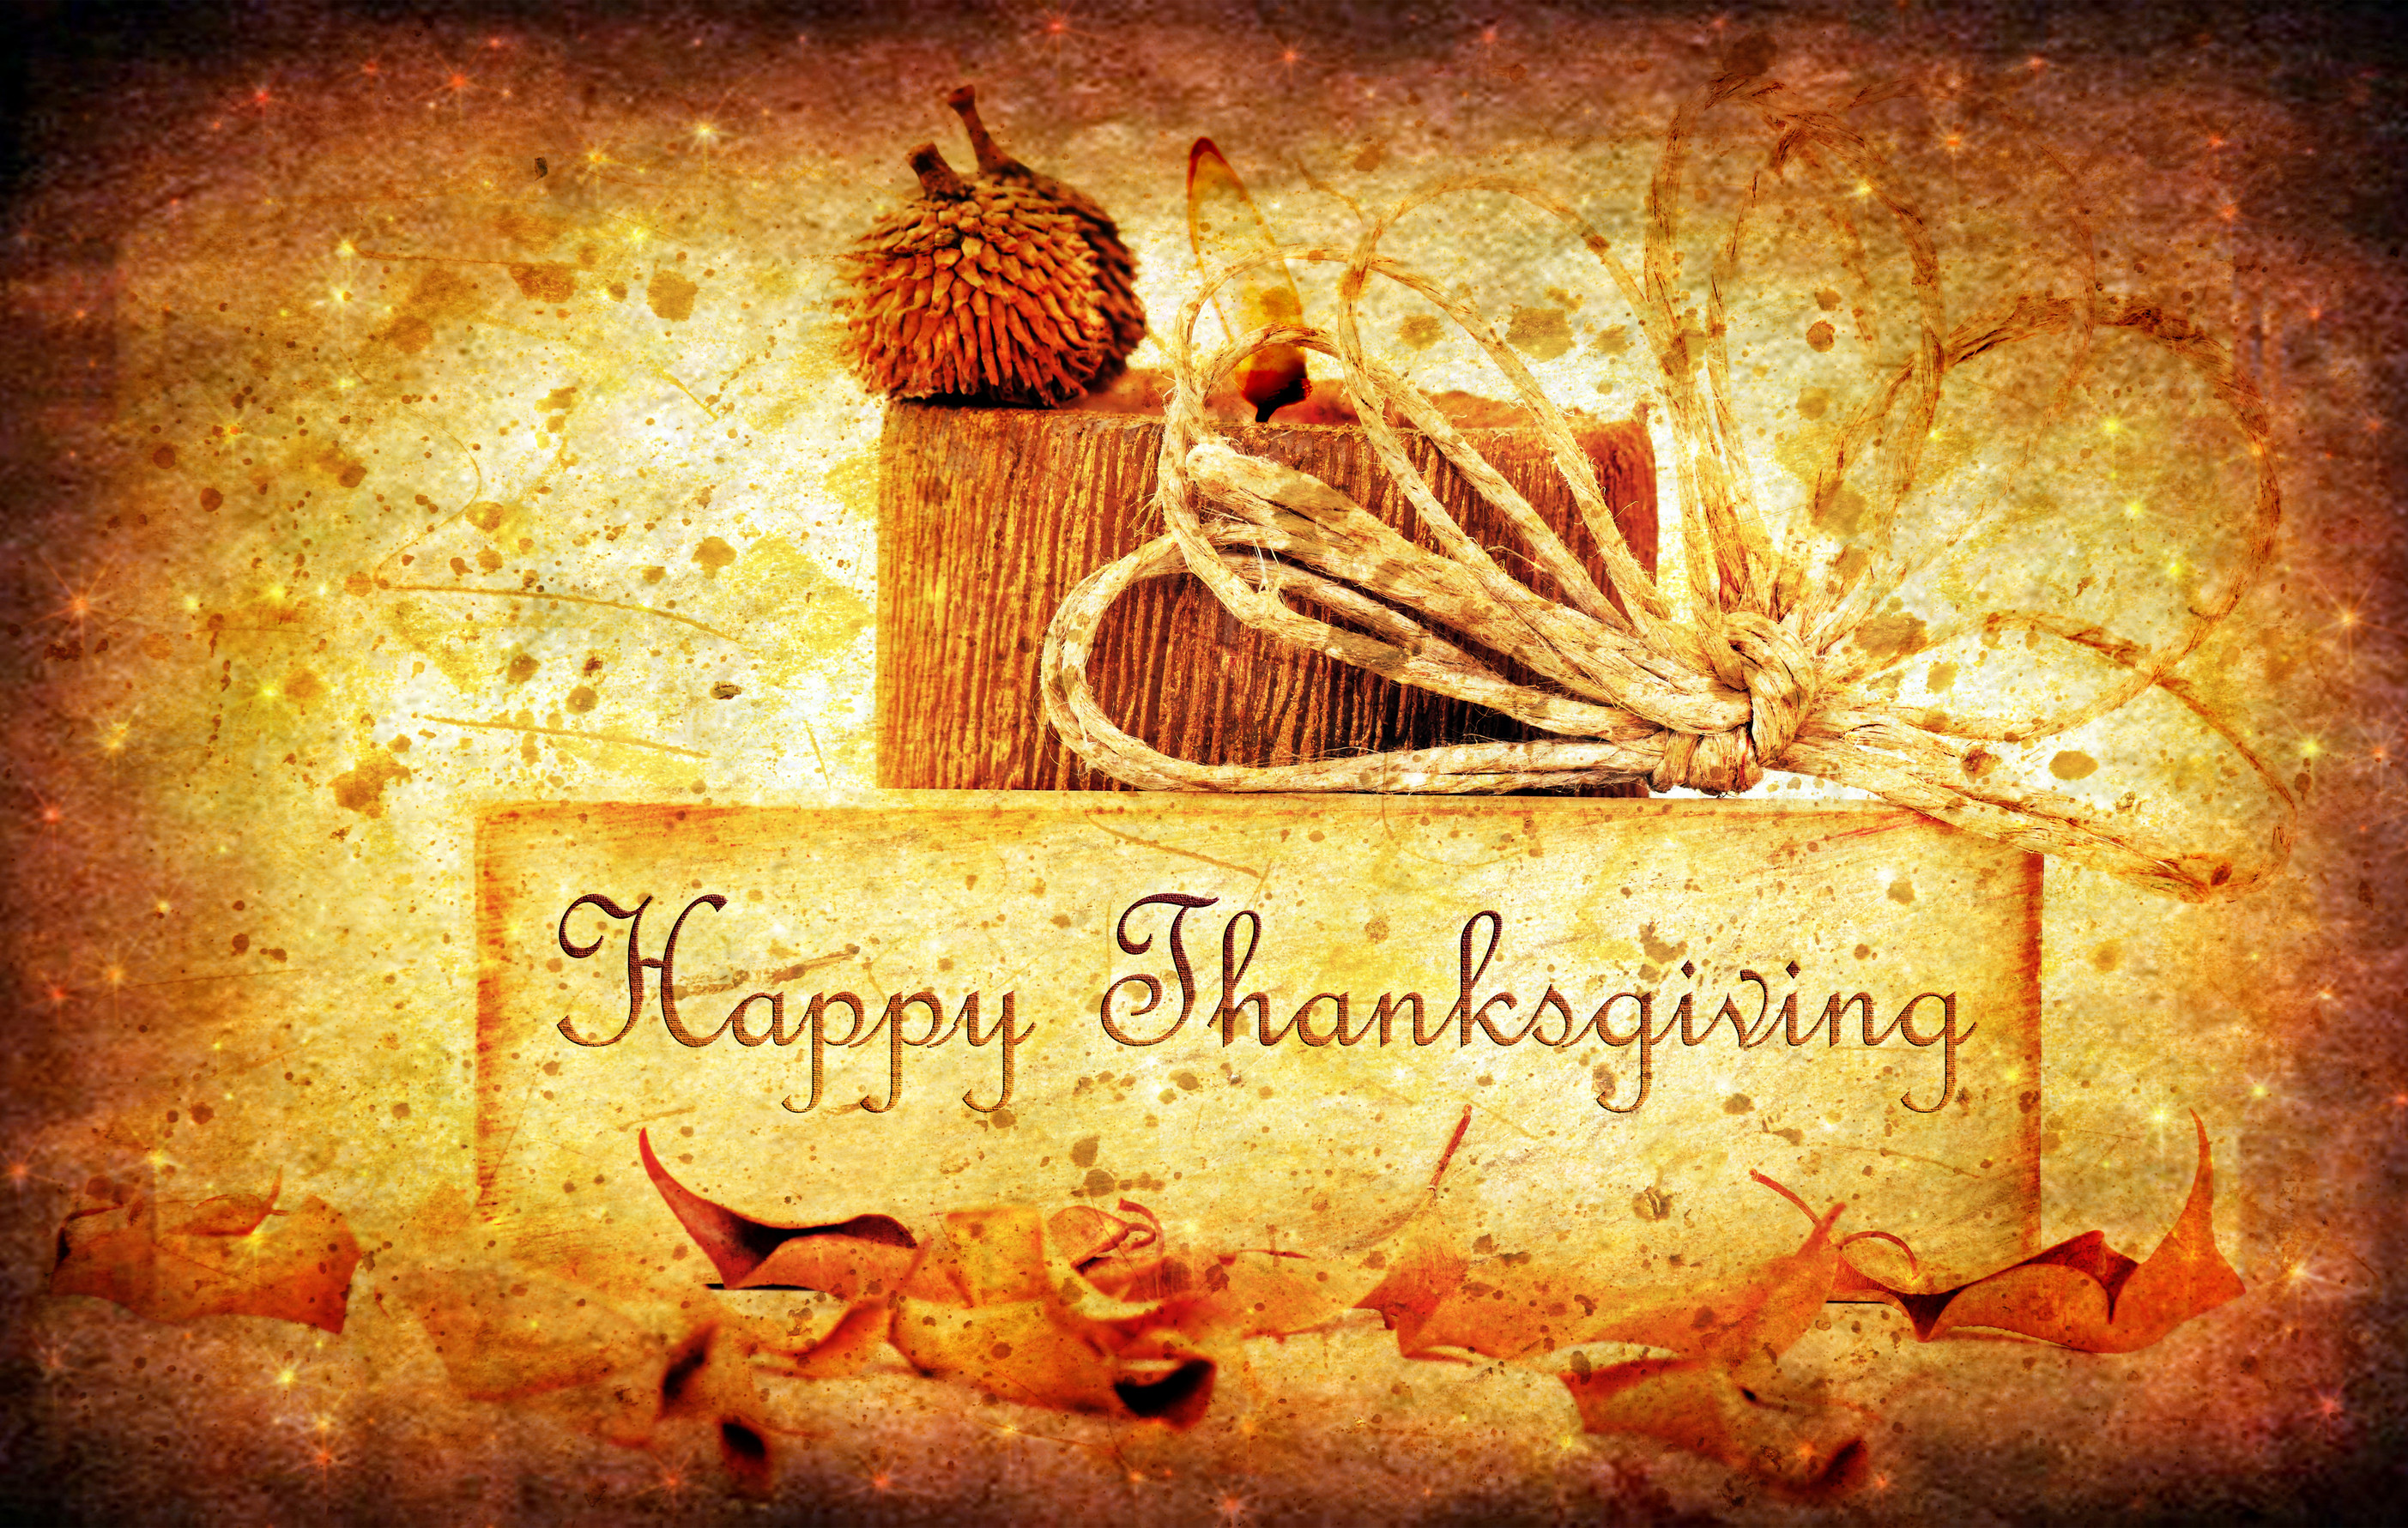 Res: 2806x1781, Thanksgiving Wallpaper HD Free Download 2016 | Page 2 of 3 | wallpaper.wiki